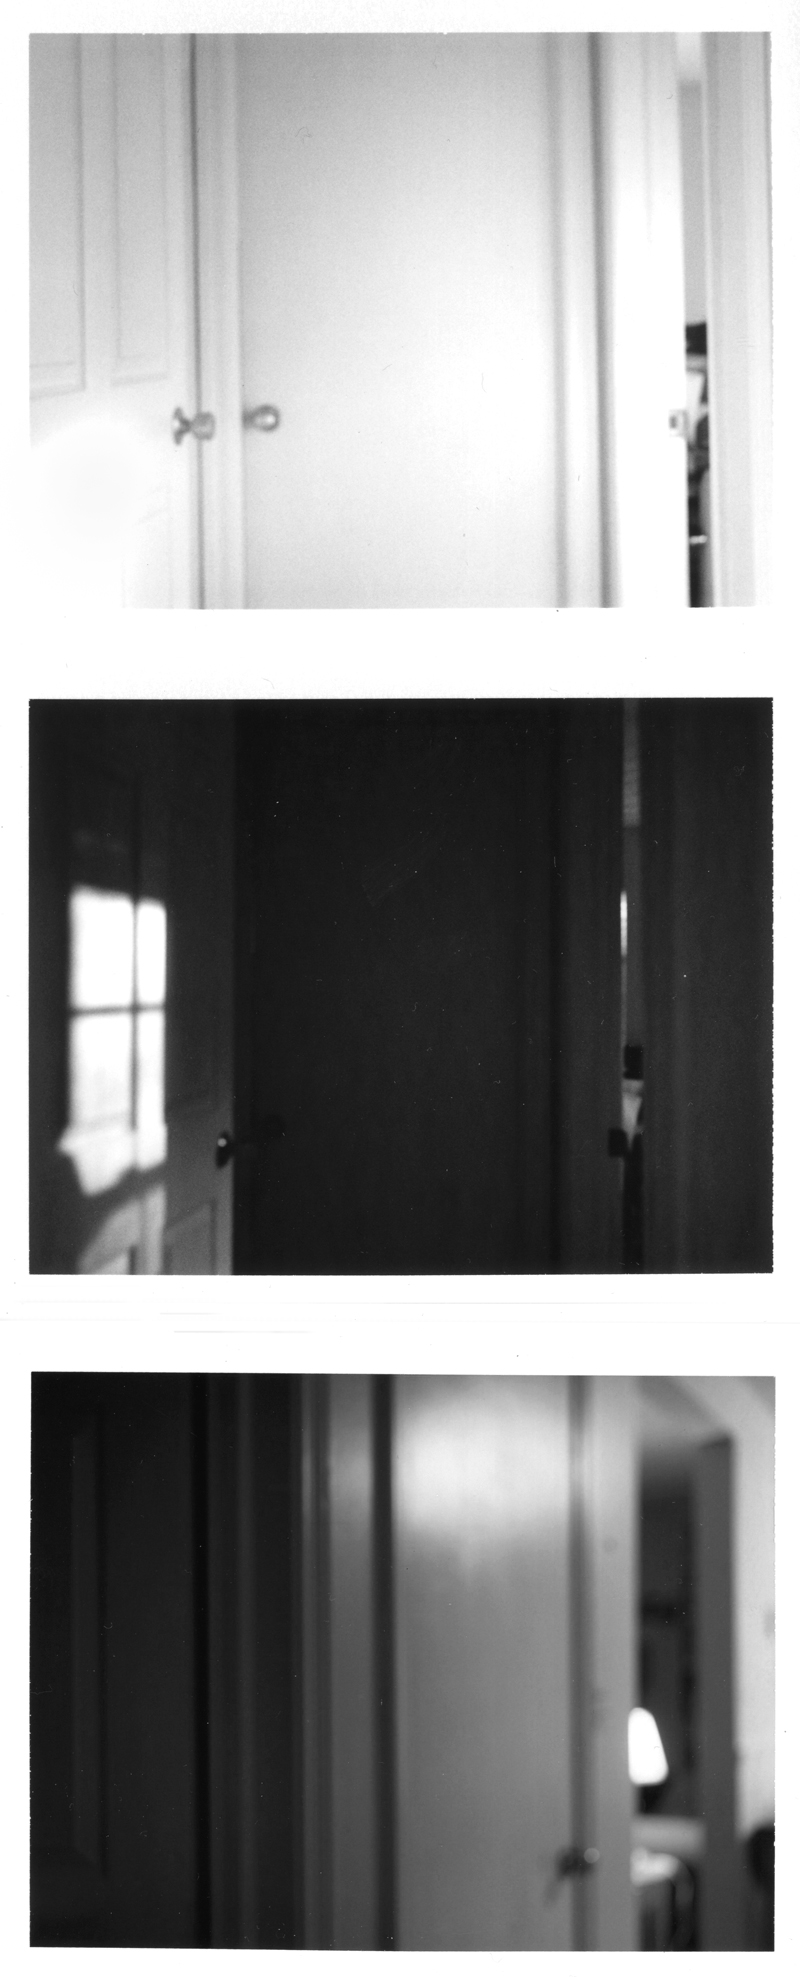 House, 2009 (3 Polaroids)